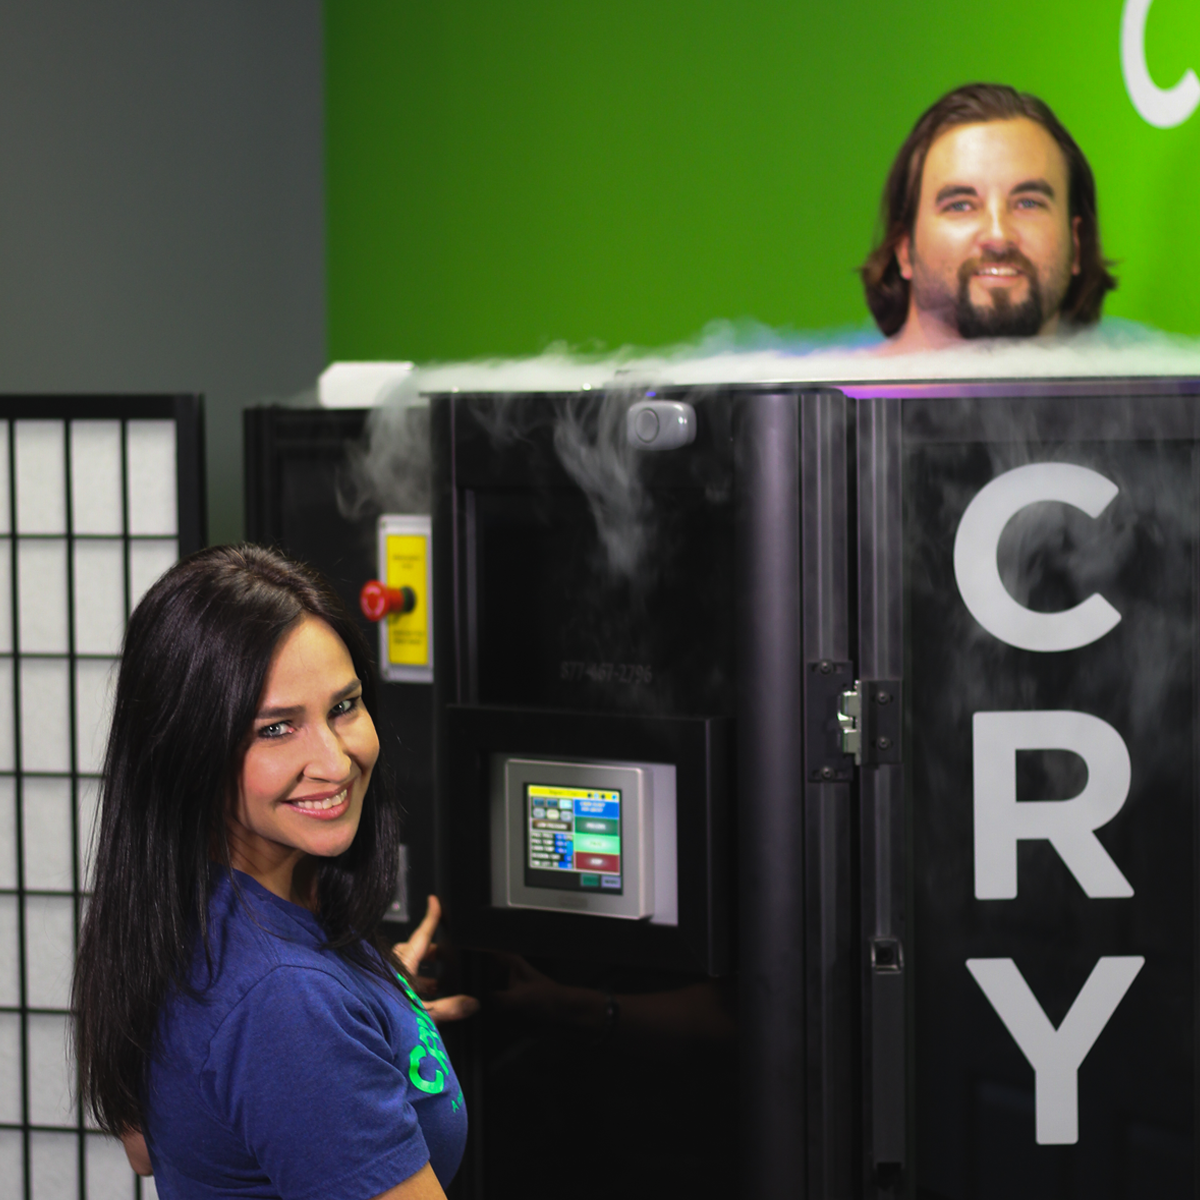 CryoFit_Cryo_Cabin_With_Client